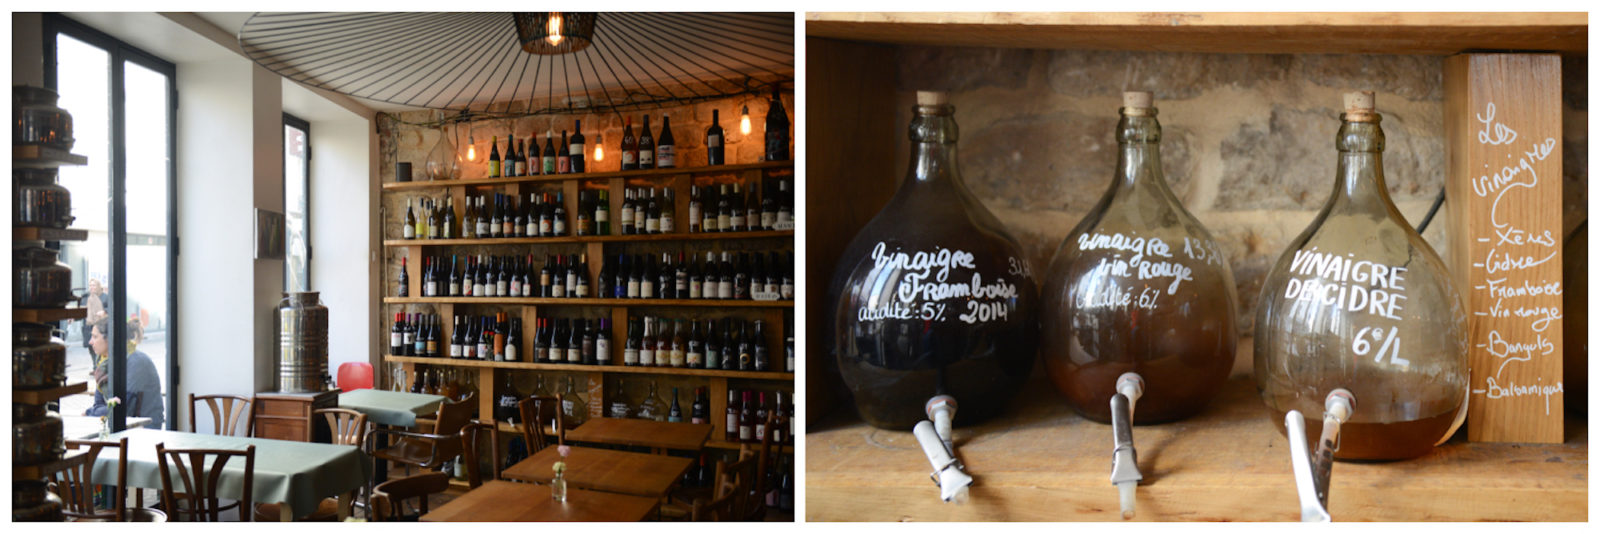 Buy wine in bulk in Paris at En Vrac in the 18th neighborhood, where bottles line the exposed stone walls (left), and some wine is stored in large glass vats (right).